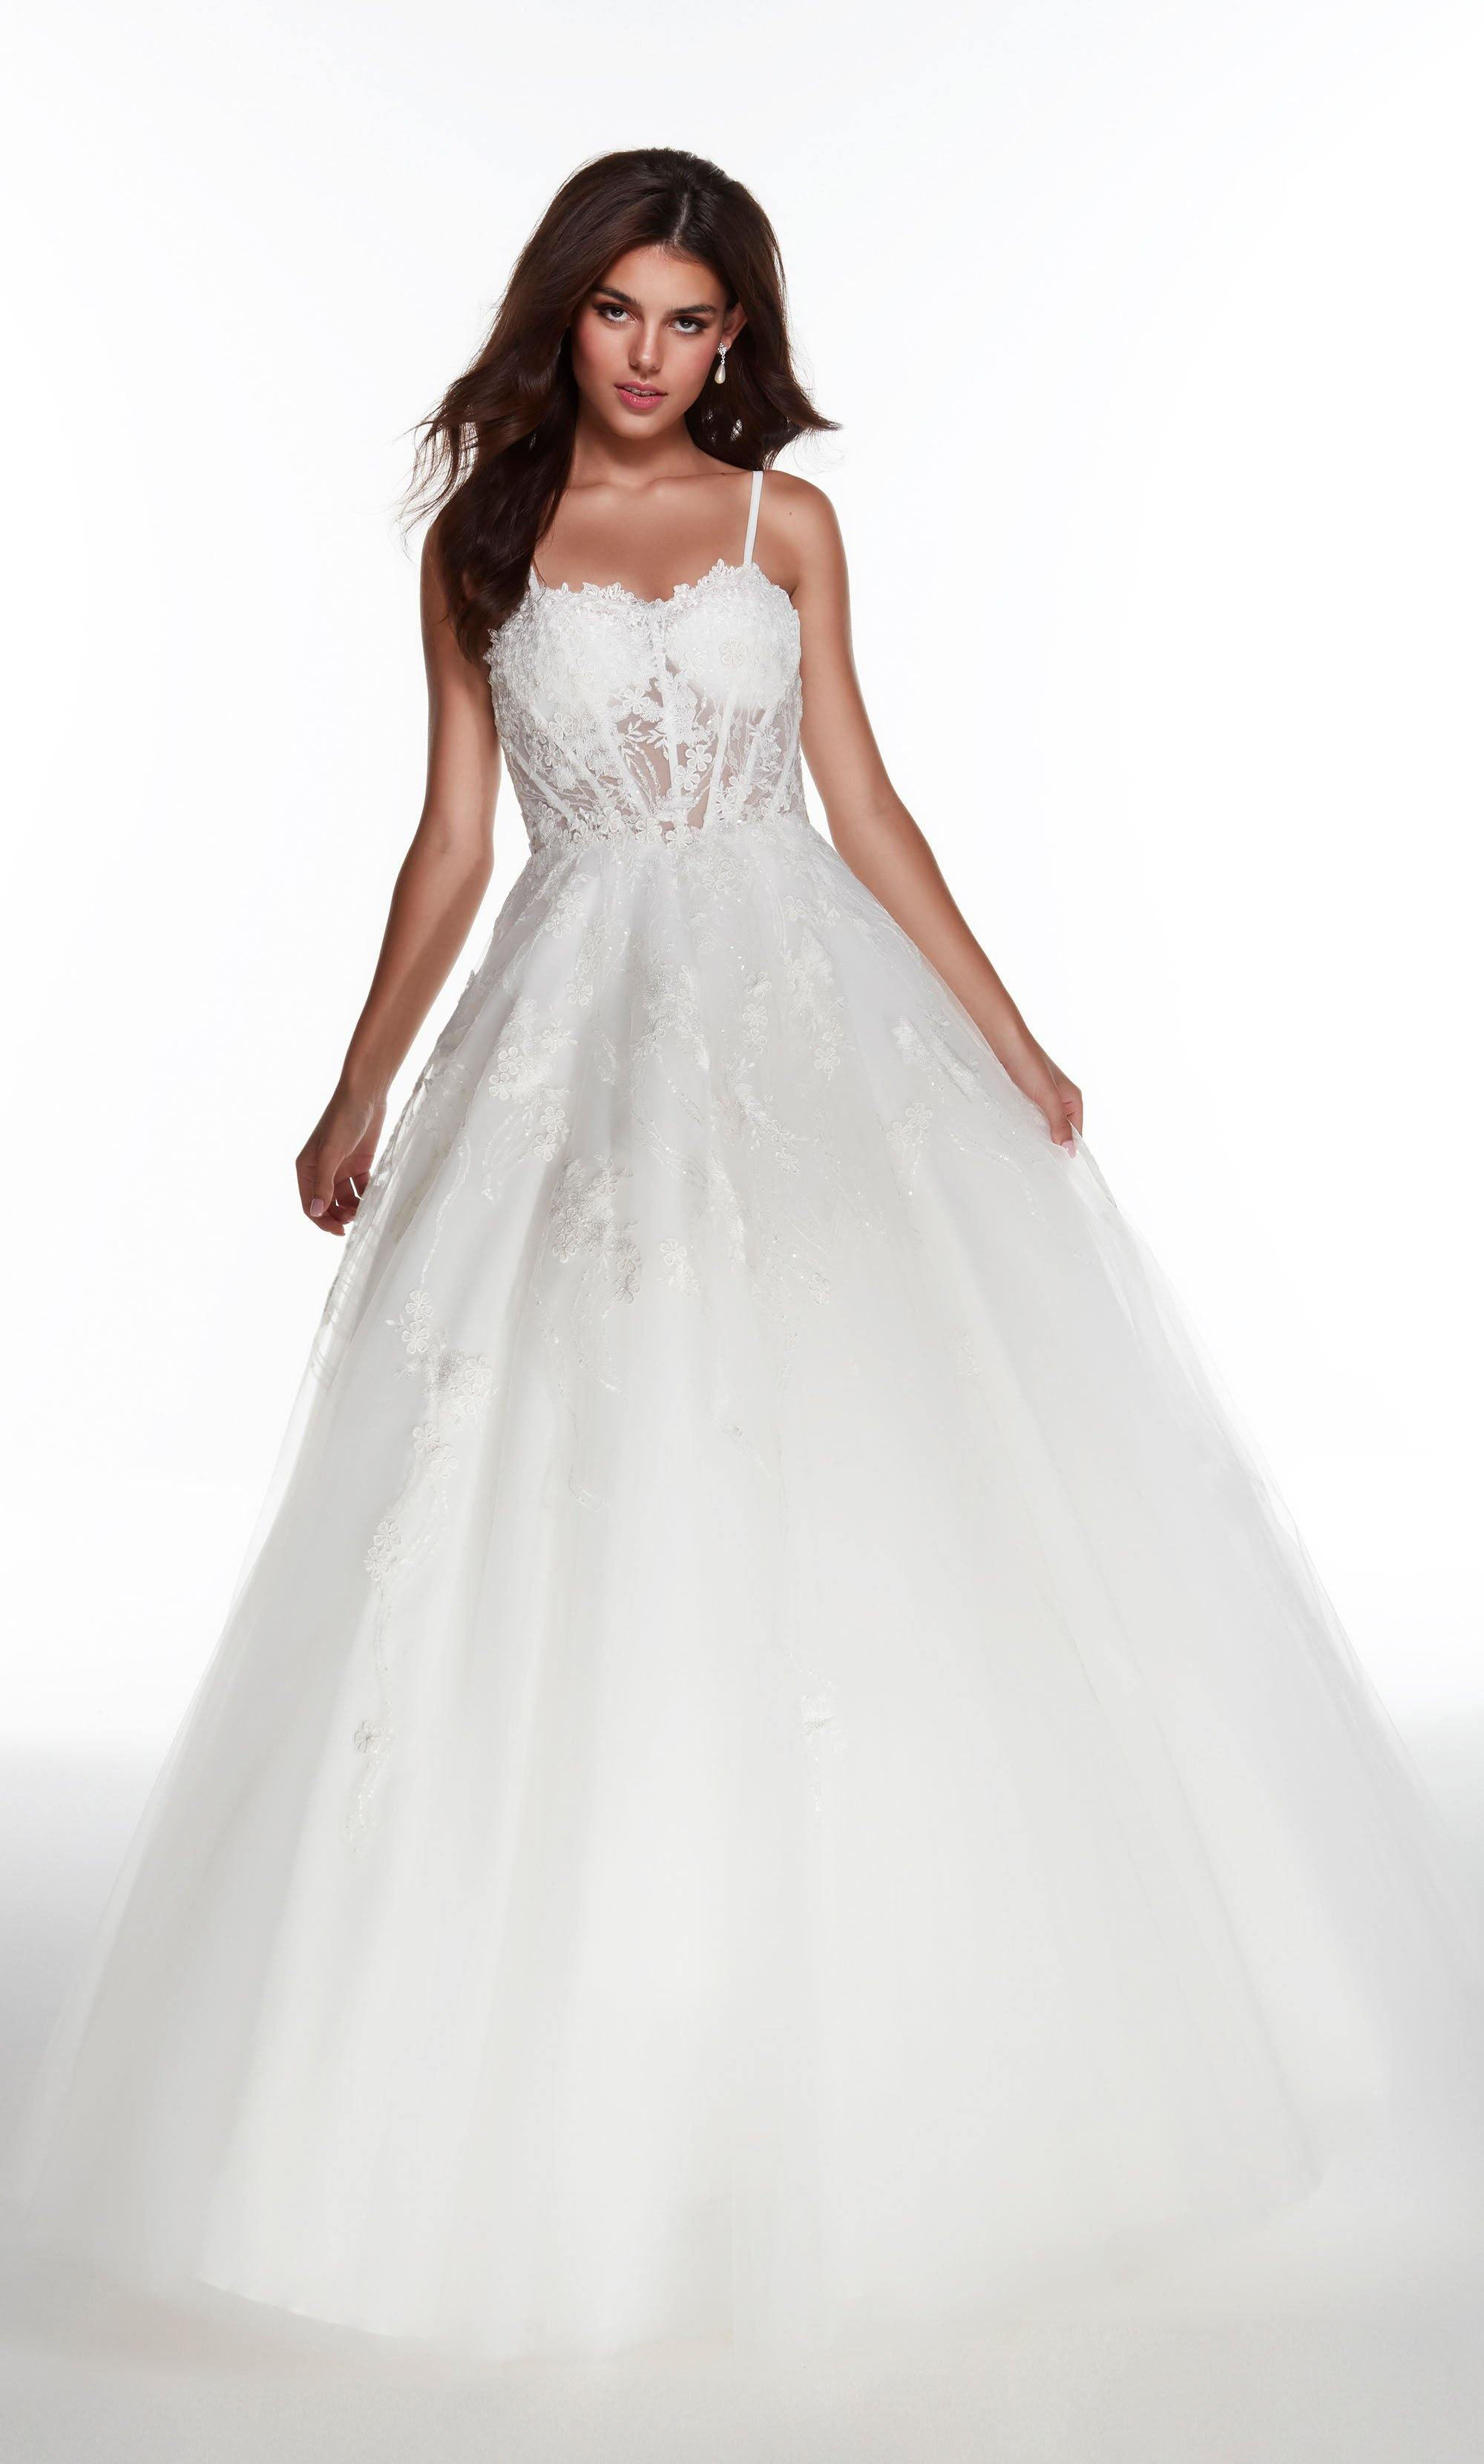 Diamond White ballgown with a sweetheart neckline, sheer bodice, and beaded floral embroidery